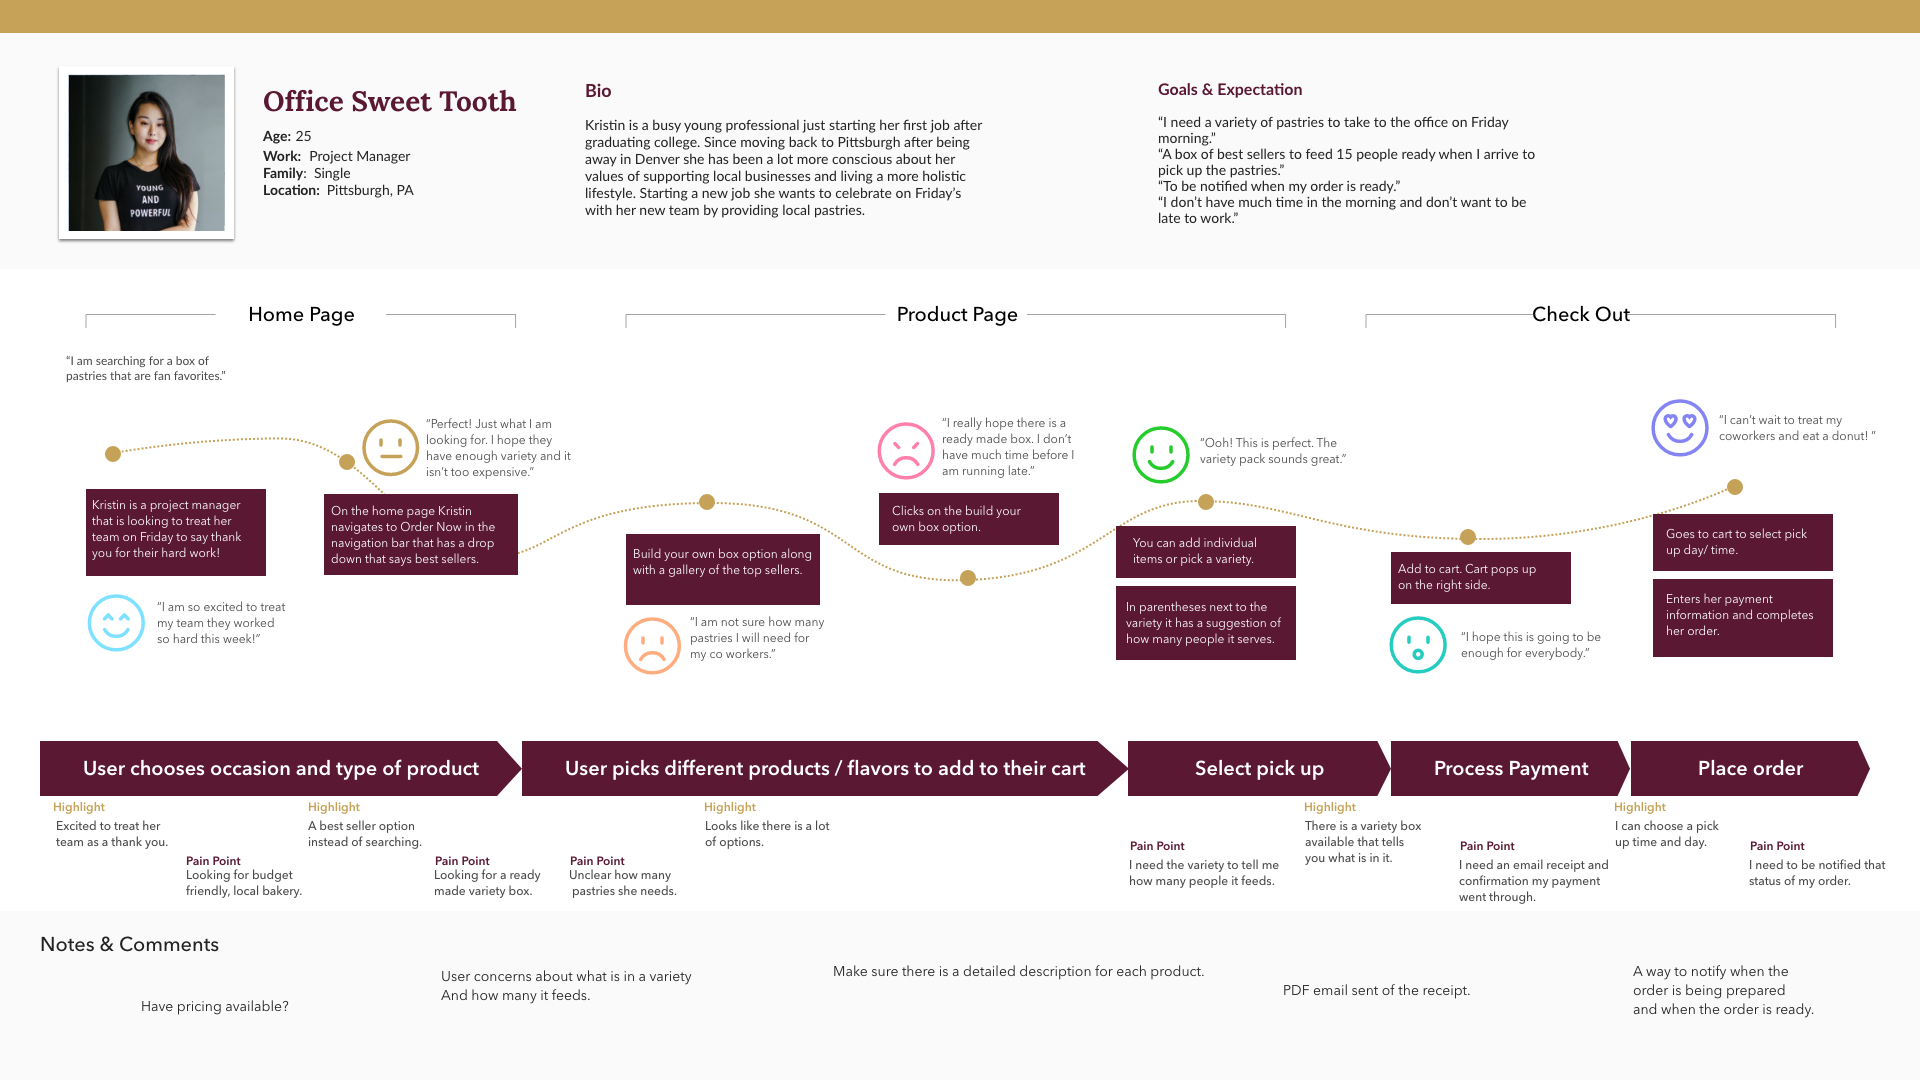 Office sweet tooth persona journey map through making a purchase